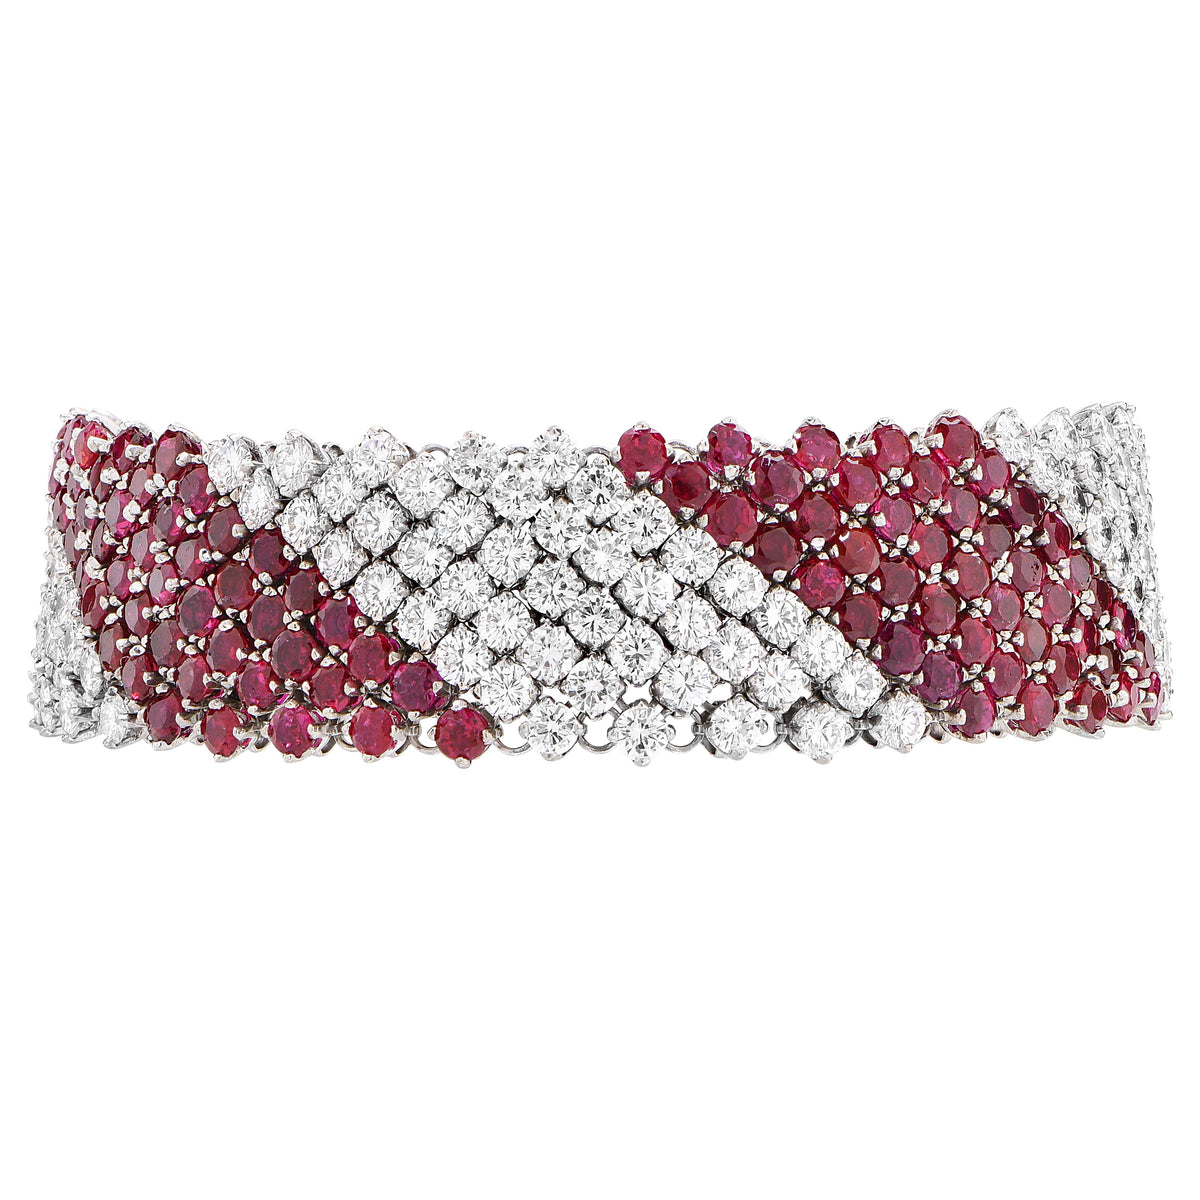 16 Carats Diamond and 19 Carats Ruby 18 Karat White Gold Bracelet